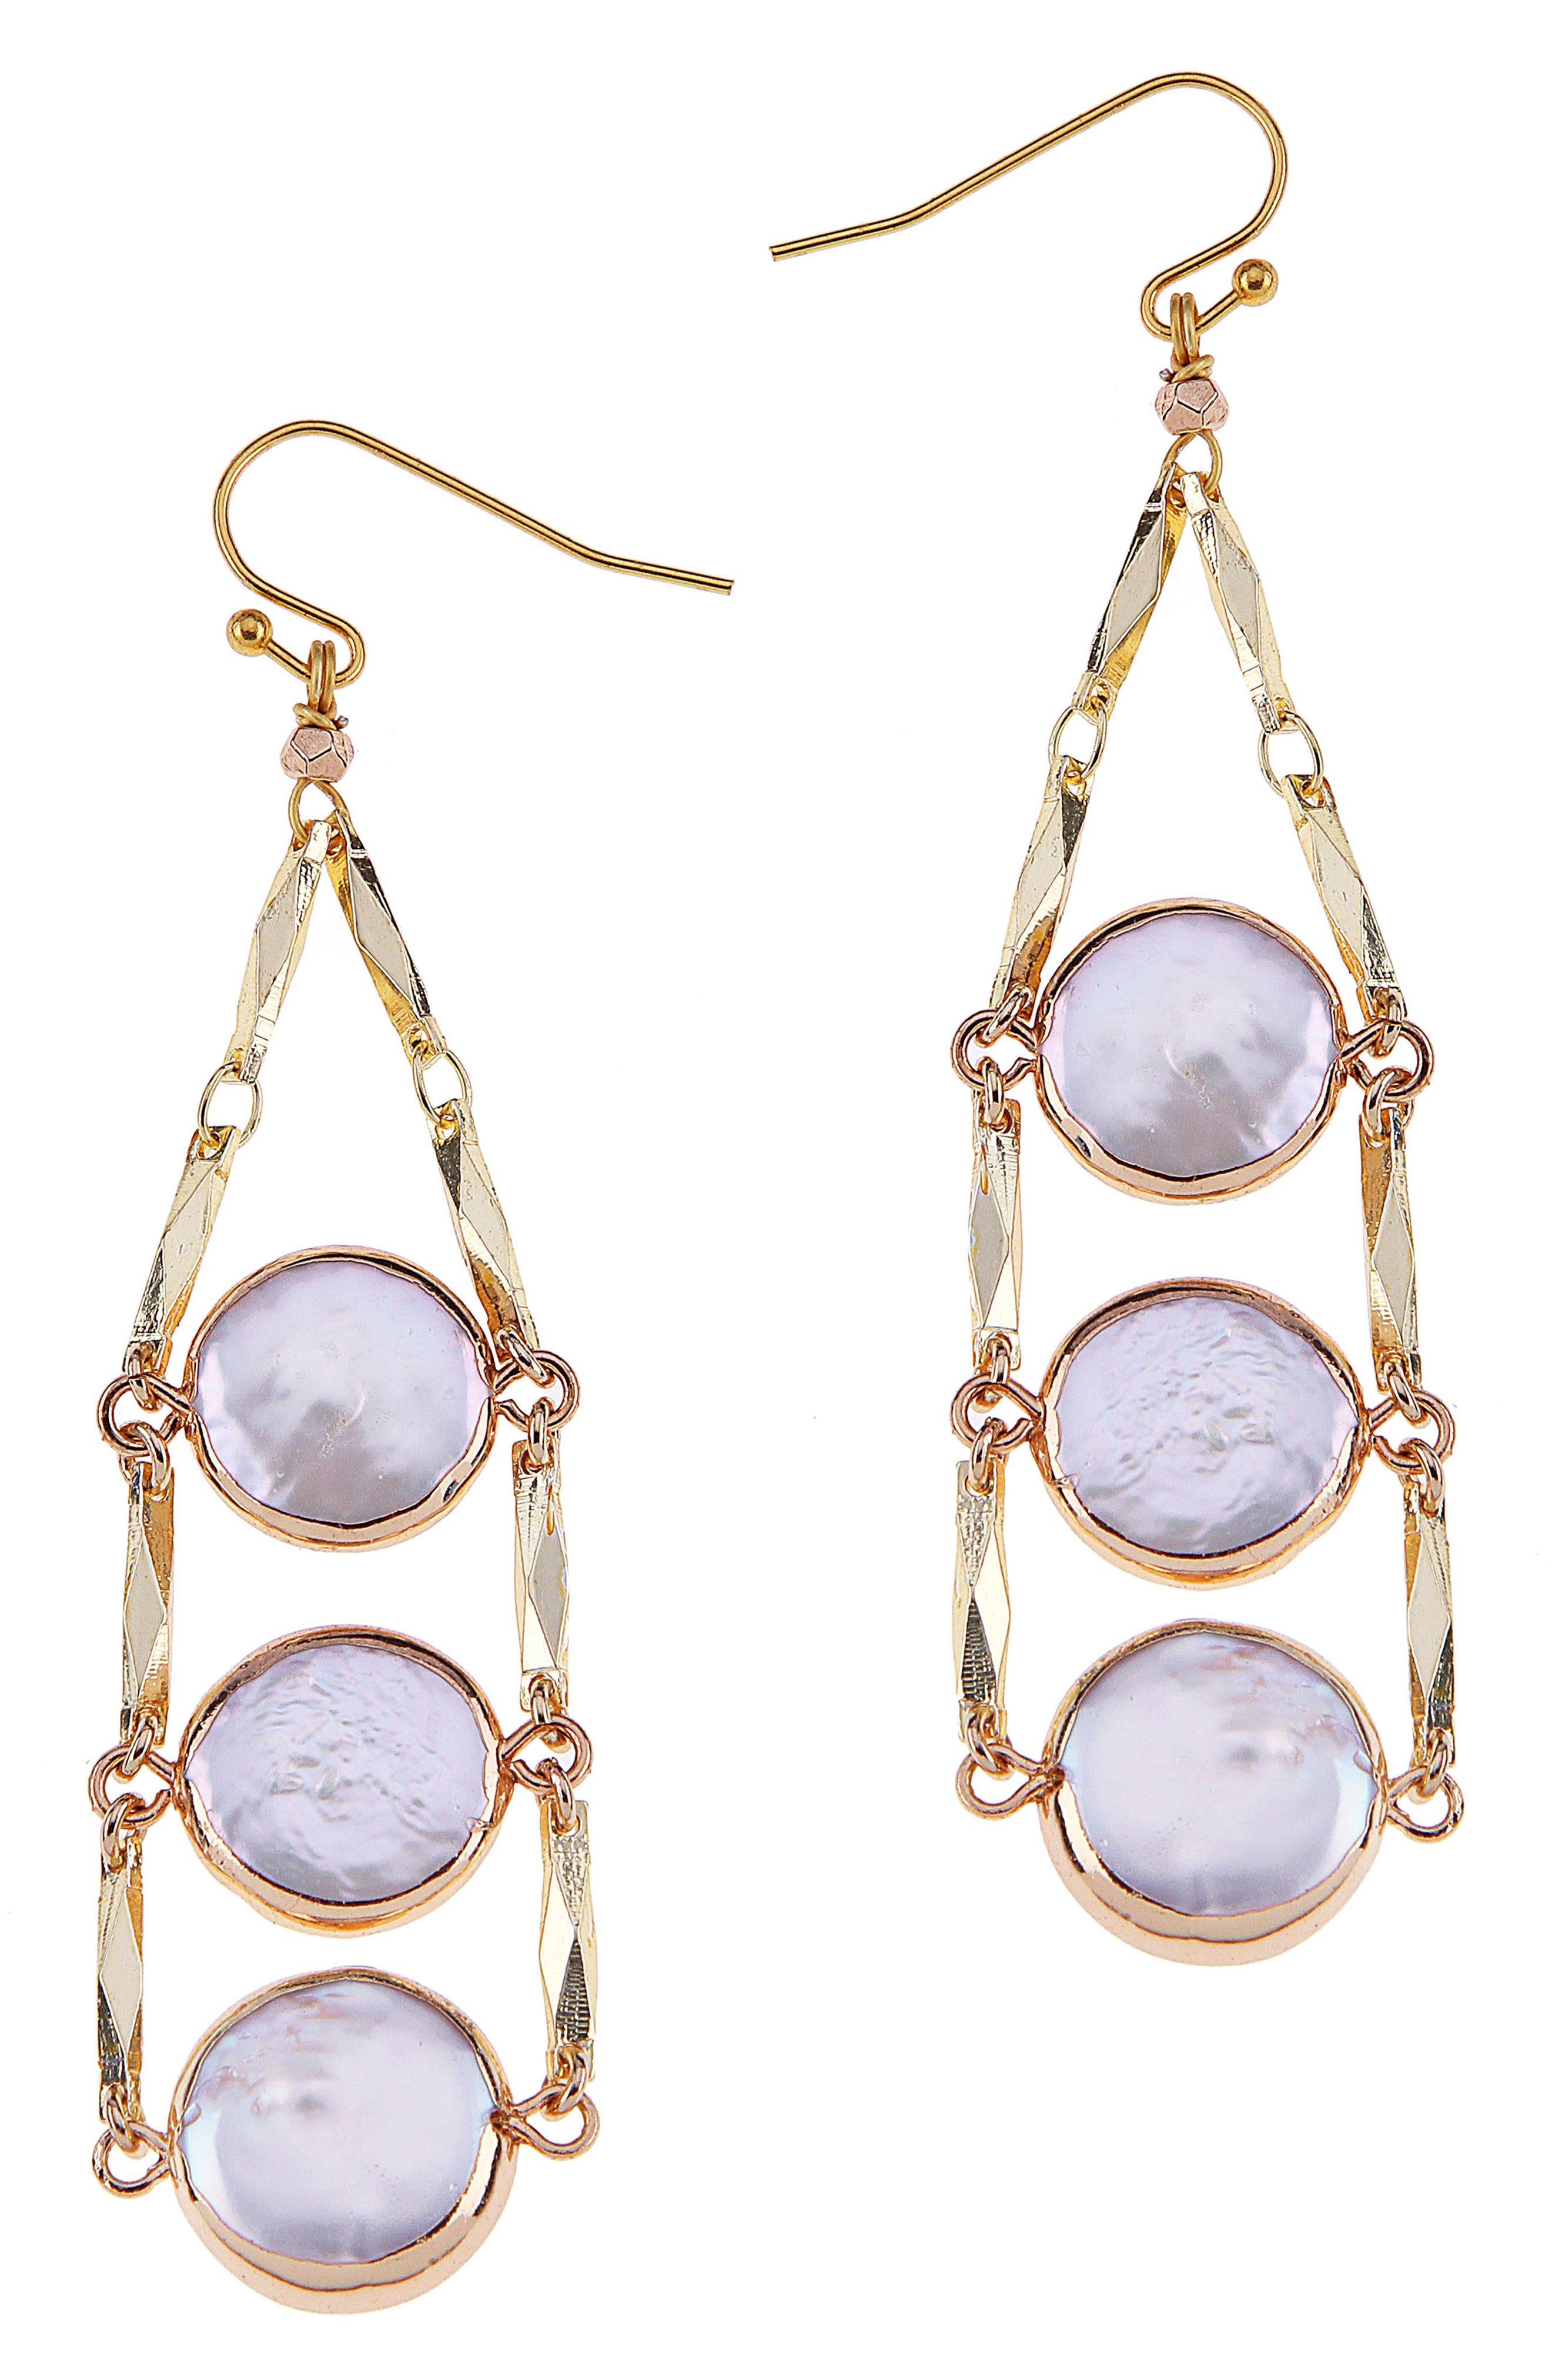 Triple Coin Freshwater Pearl Drop Earrings,                         Main,                         color, White